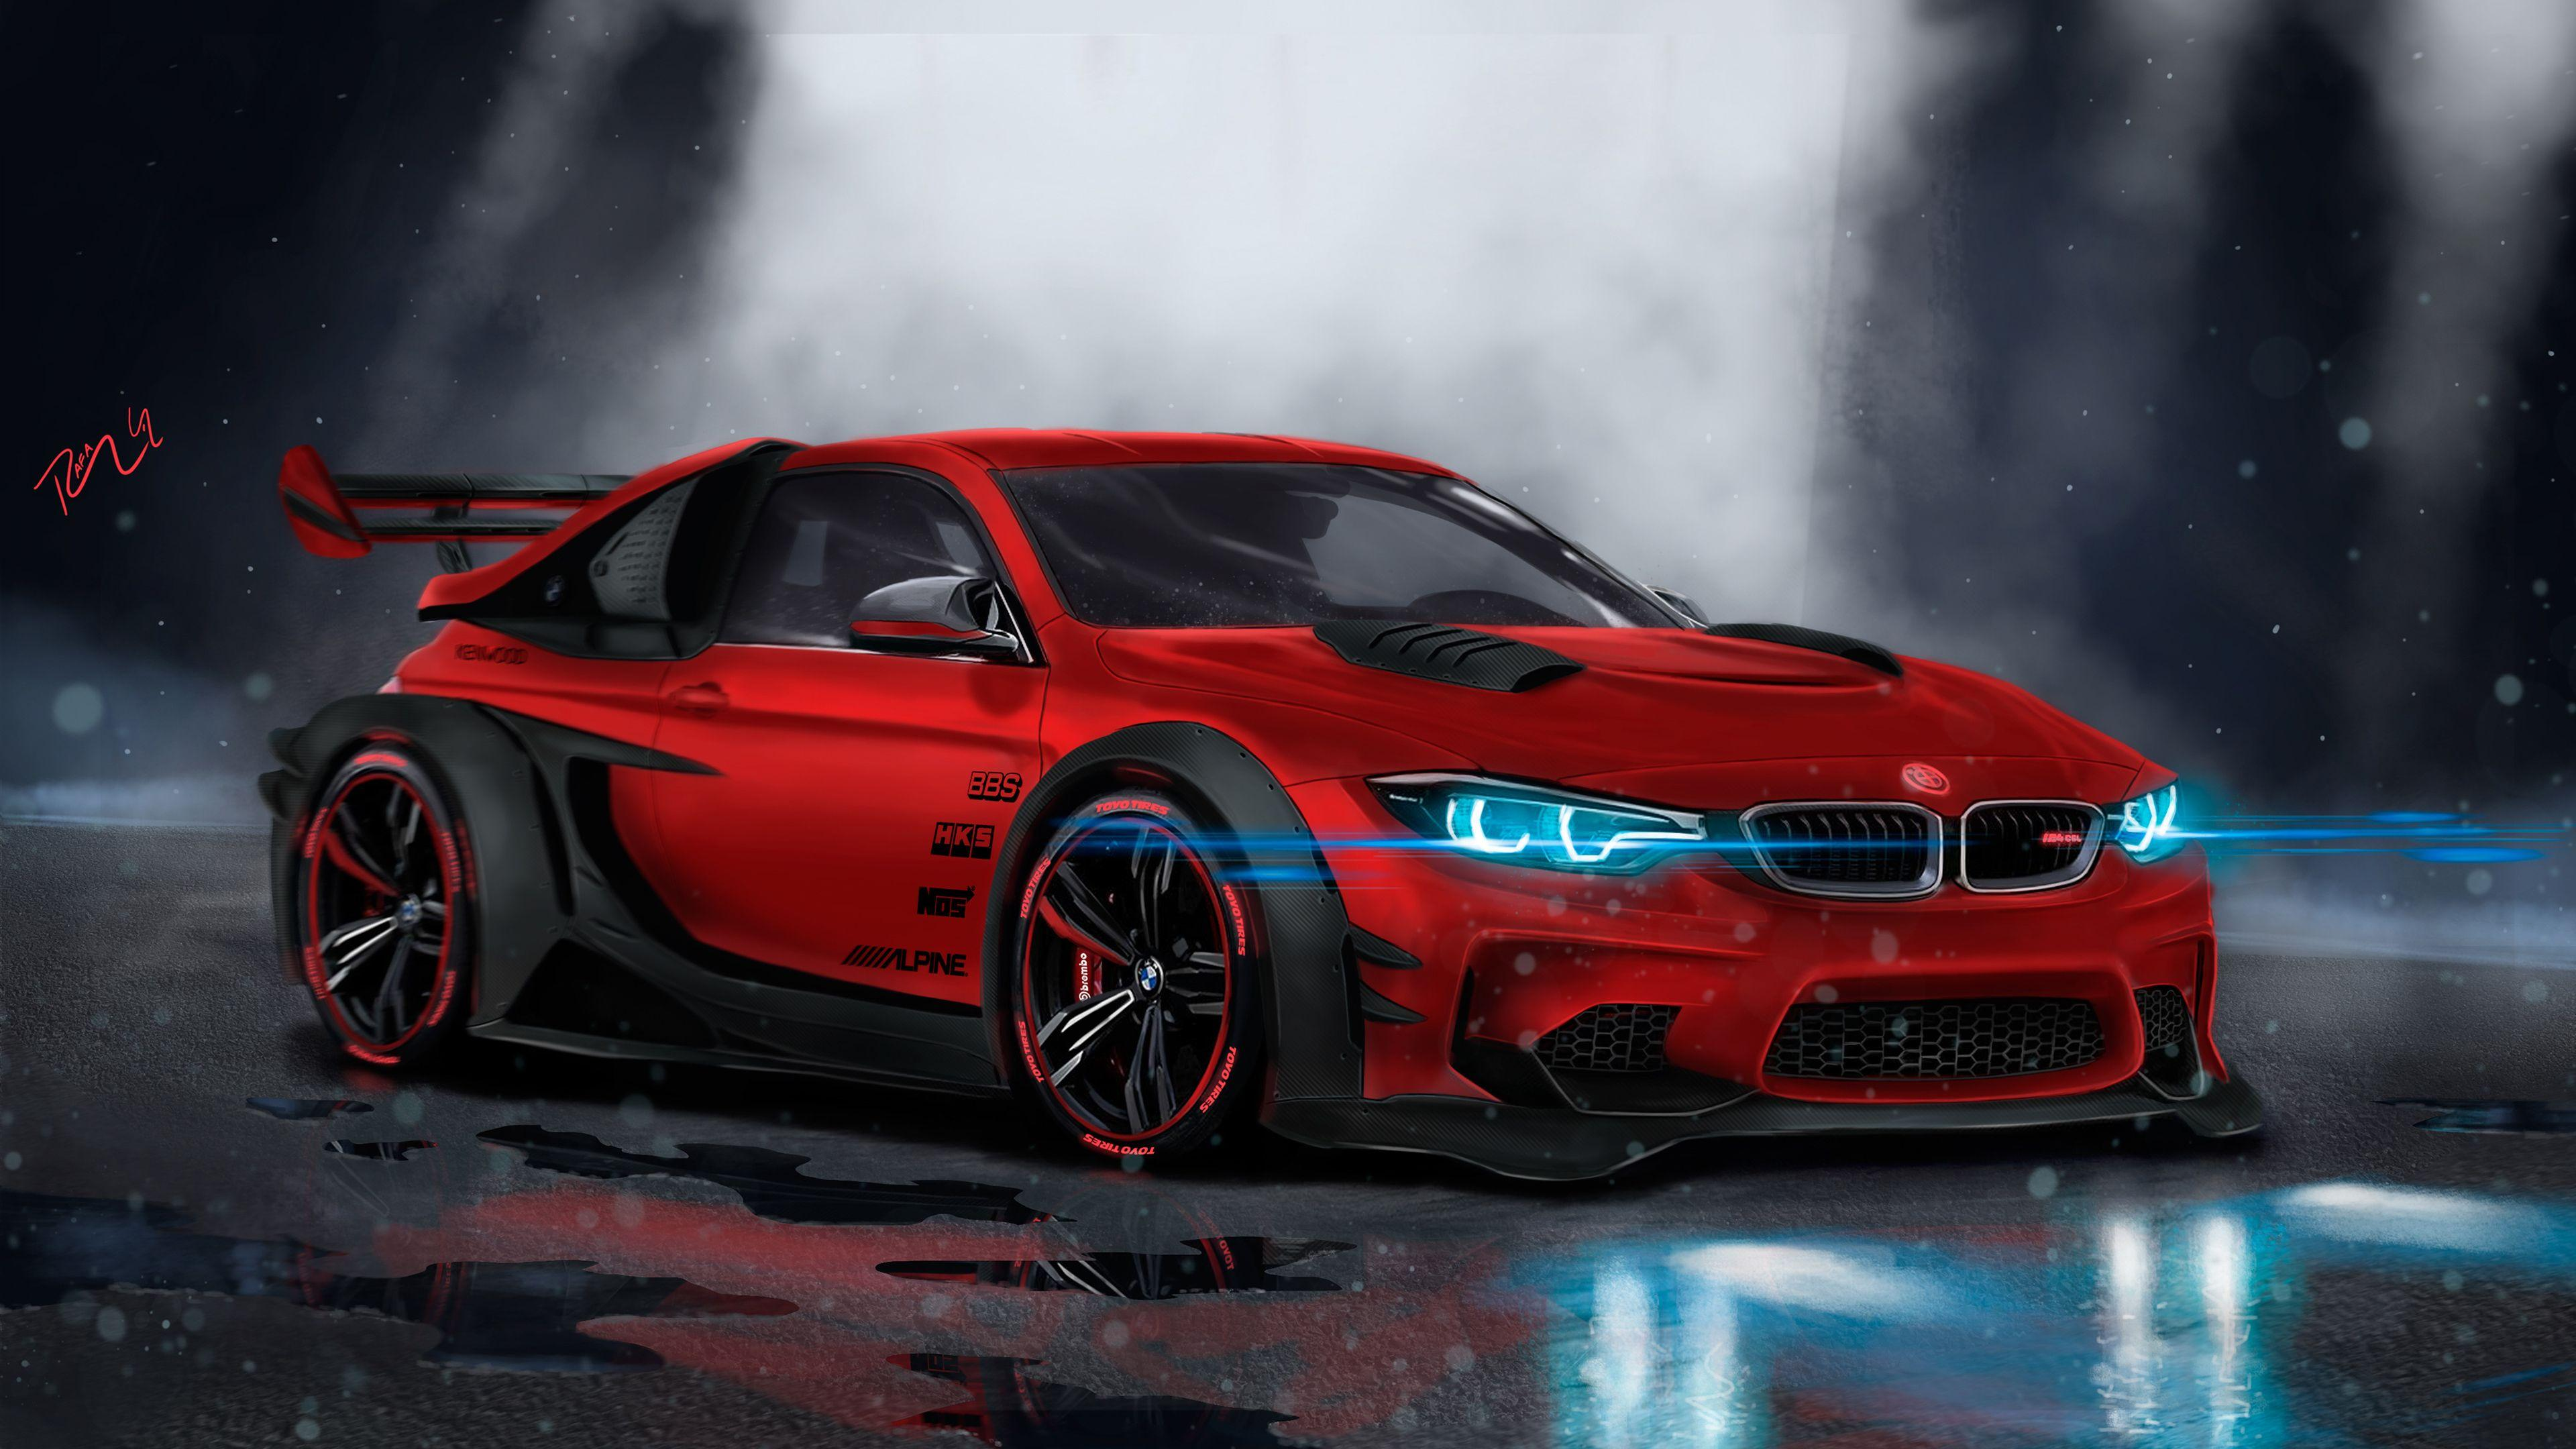 4k wallpapers bmw custom m4 cgi